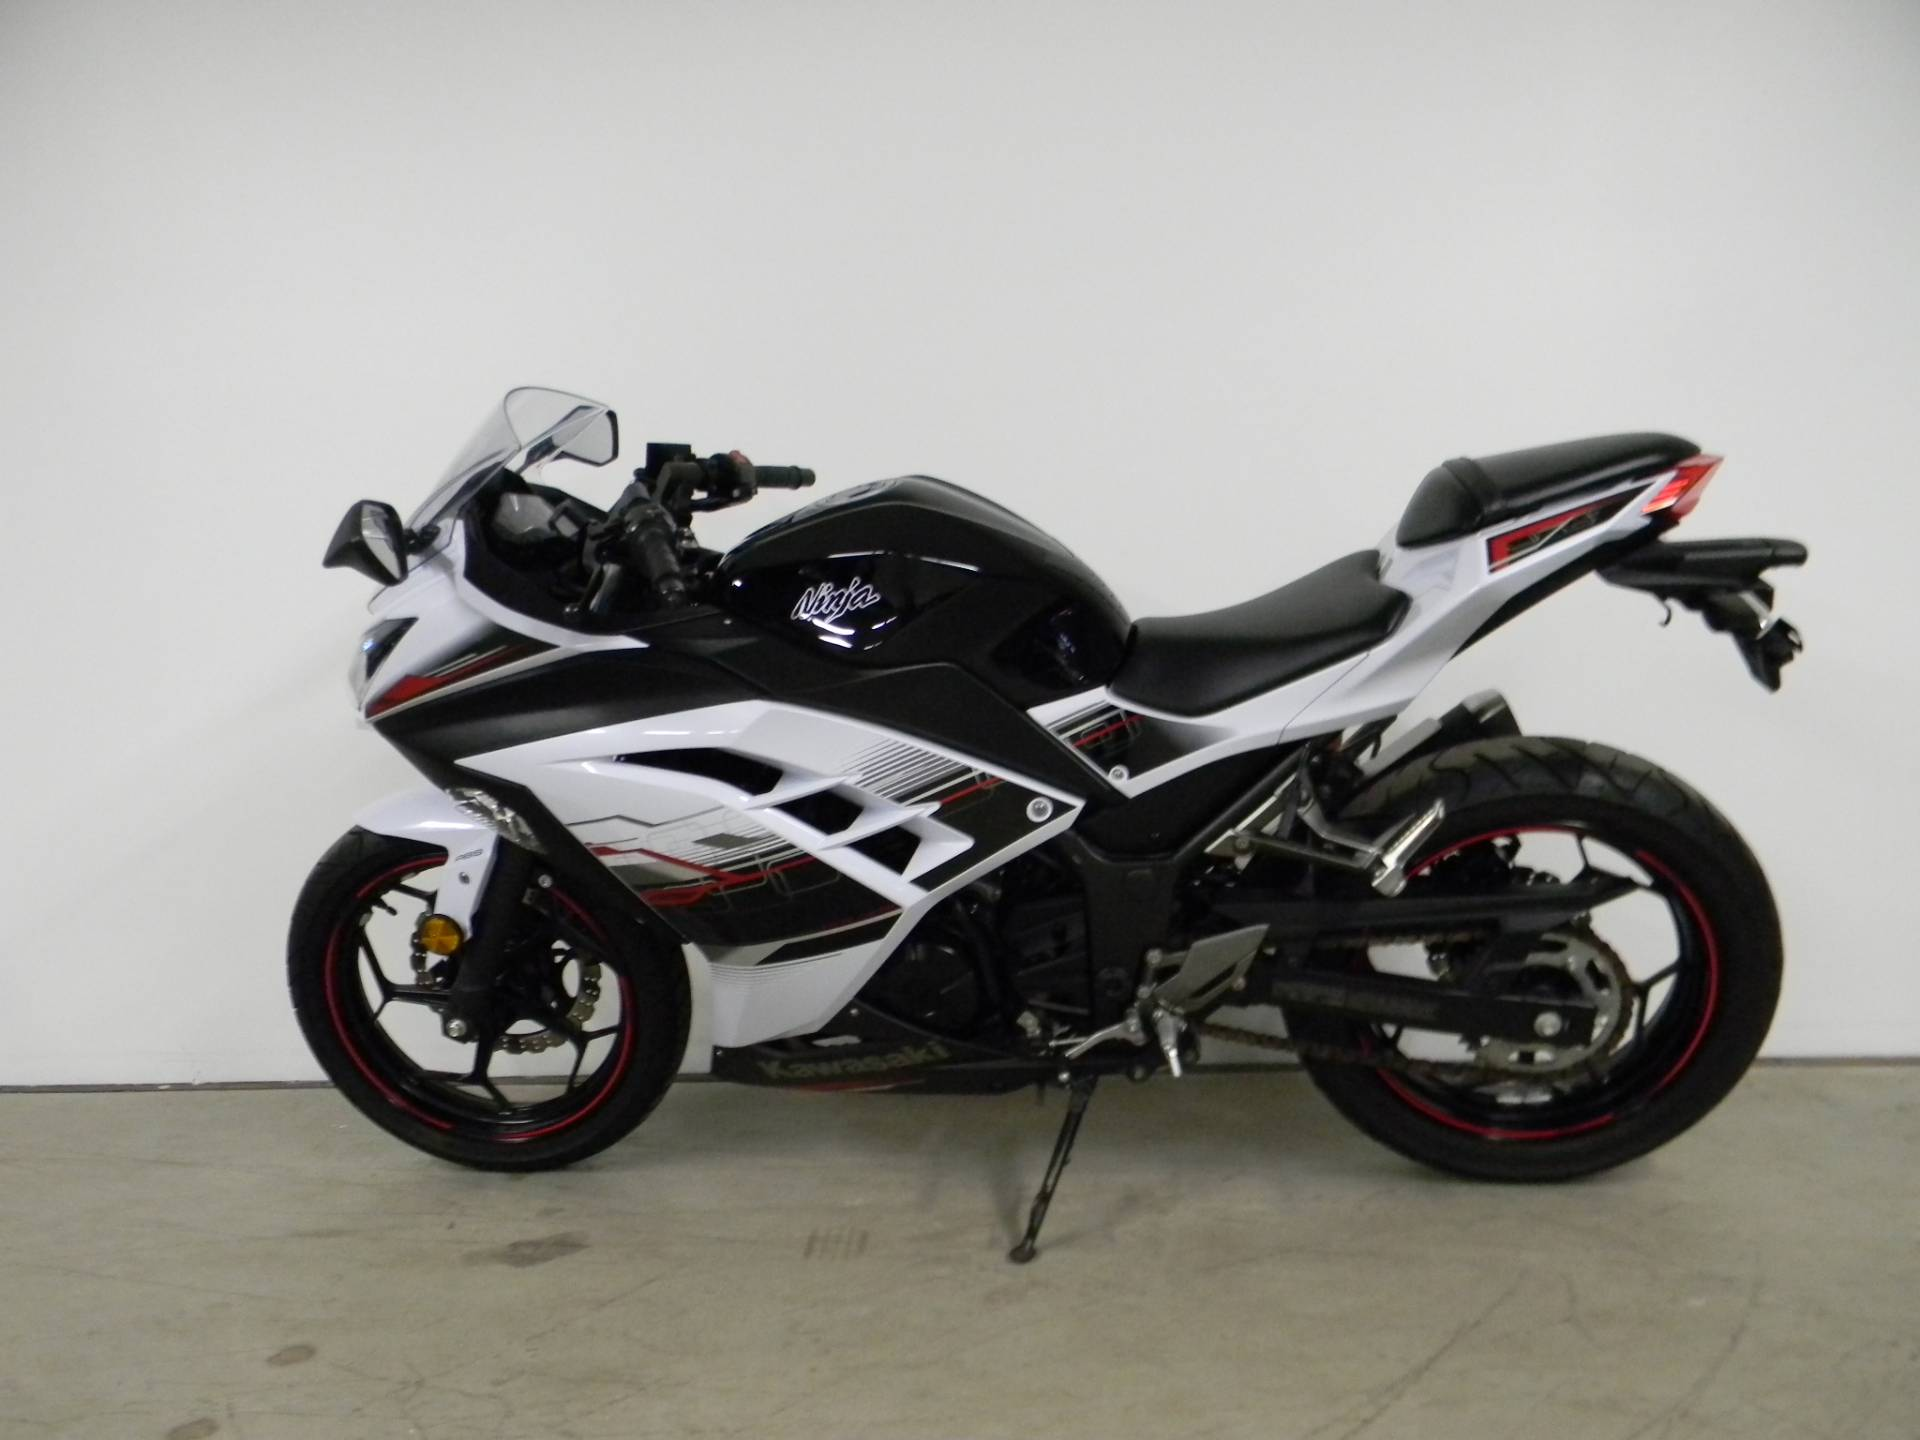 2014 Kawasaki Ninja® 300 SE in Springfield, Massachusetts - Photo 5